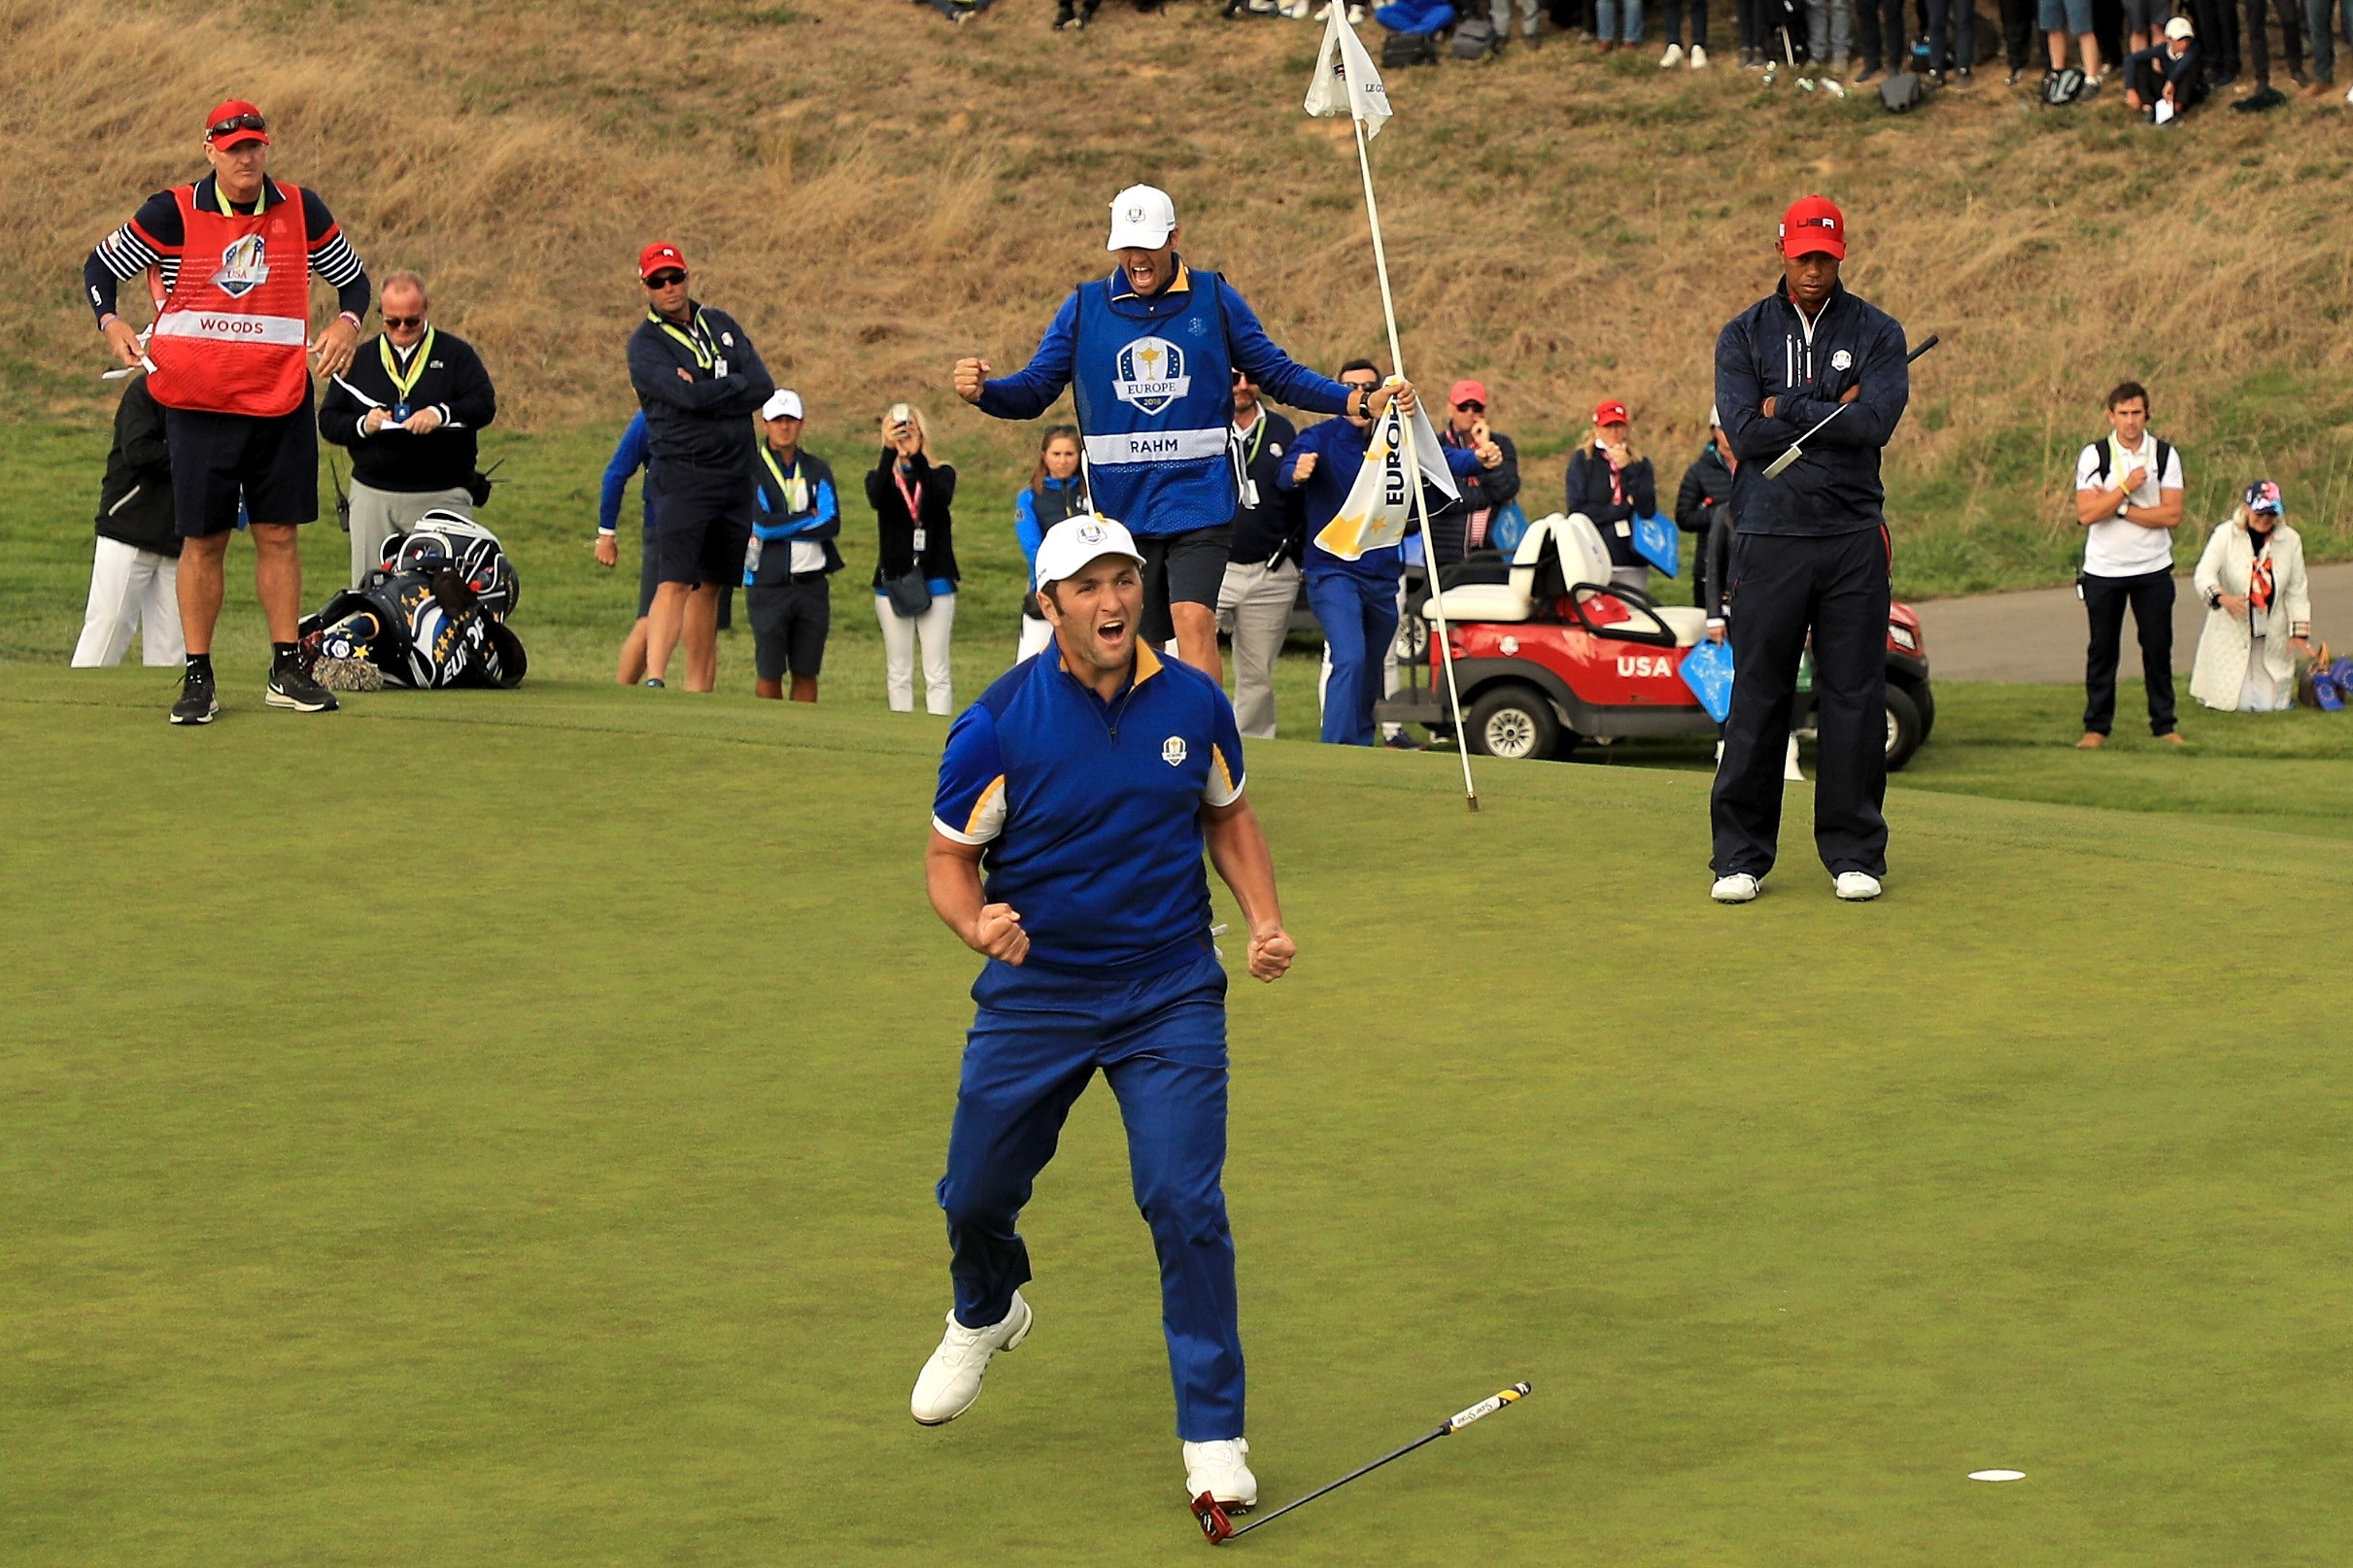 Jon Rahm of Europe celebrates winning his match on the 17th during singles matches of the 2018 Ryder Cup at Le Golf National on September 30, 2018 in Paris, France